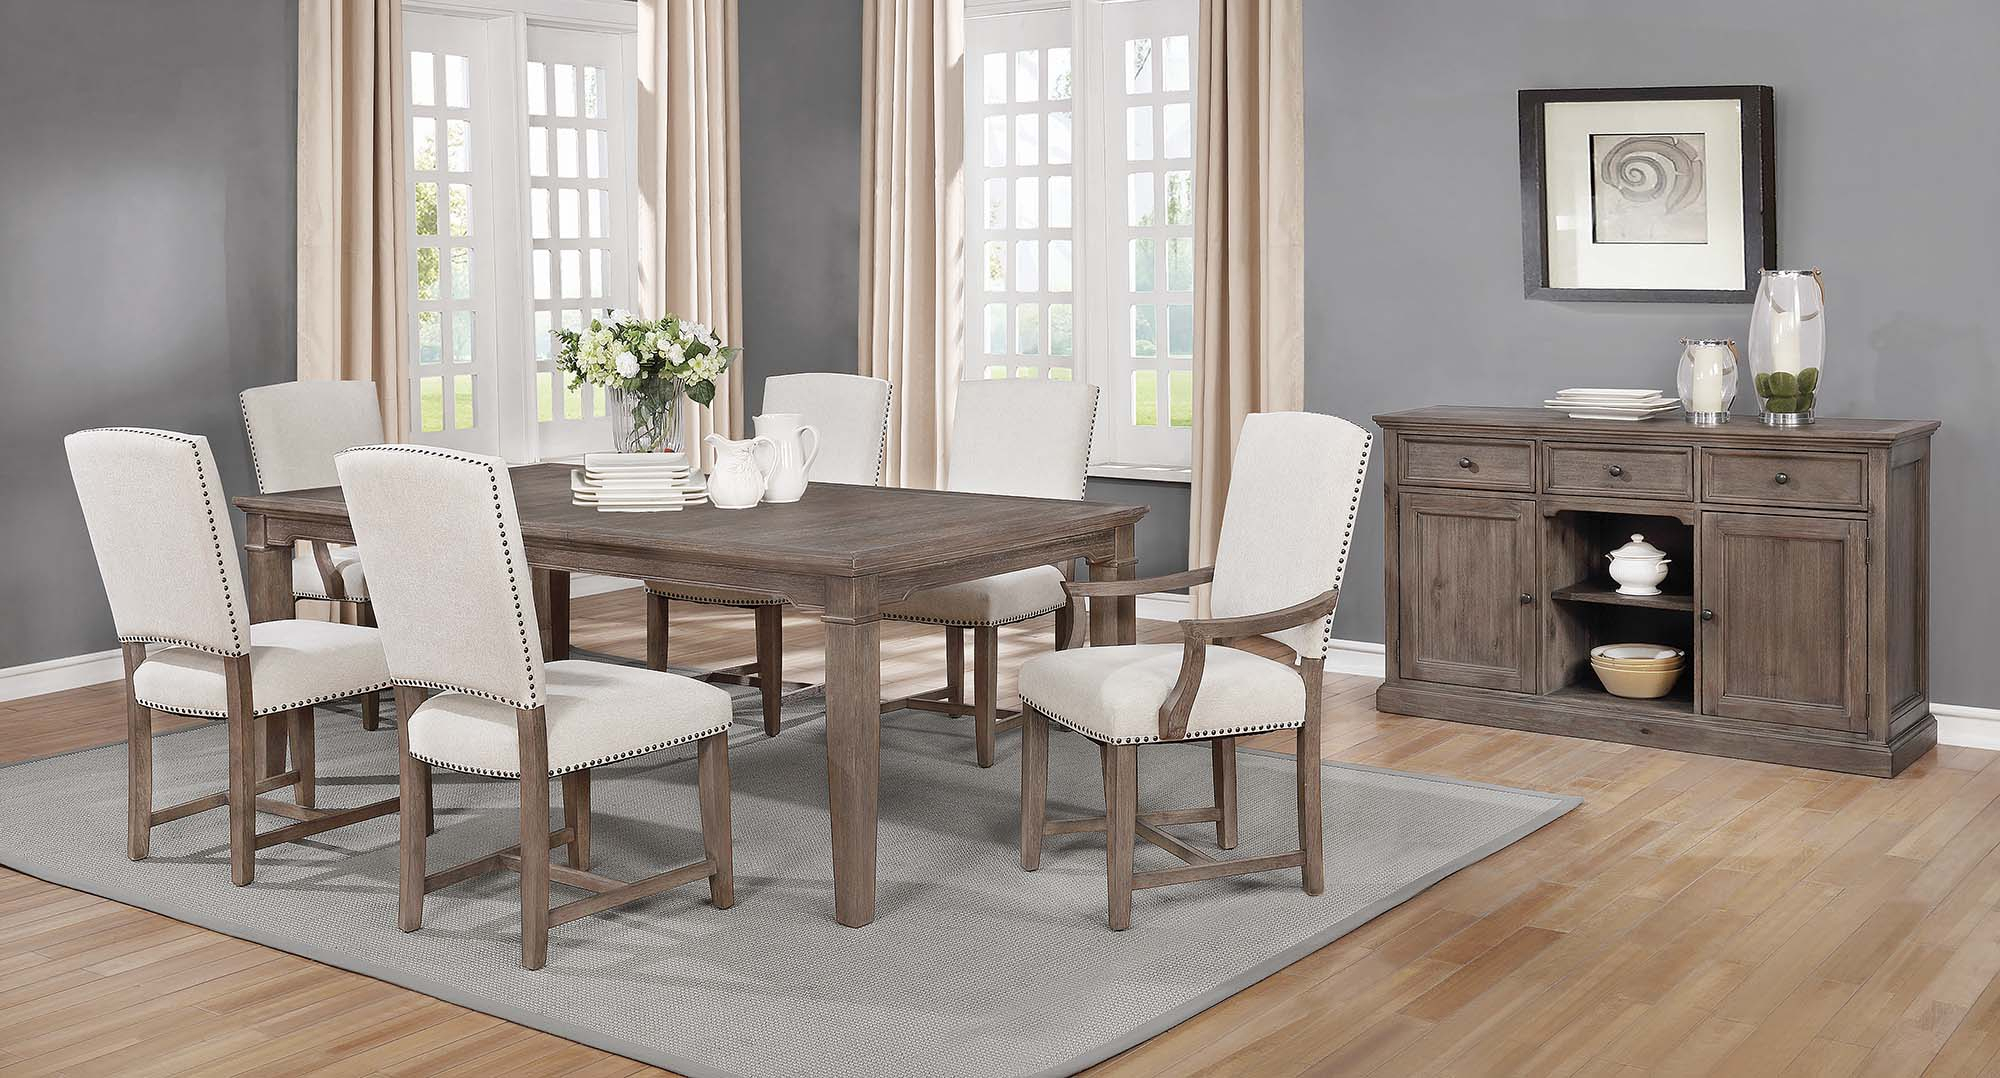 Penelope 7 Piece Dining Set Island Khaki And Rice Grey Intended For 2017 Penelope 3 Piece Counter Height Wood Dining Sets (Photo 16 of 20)